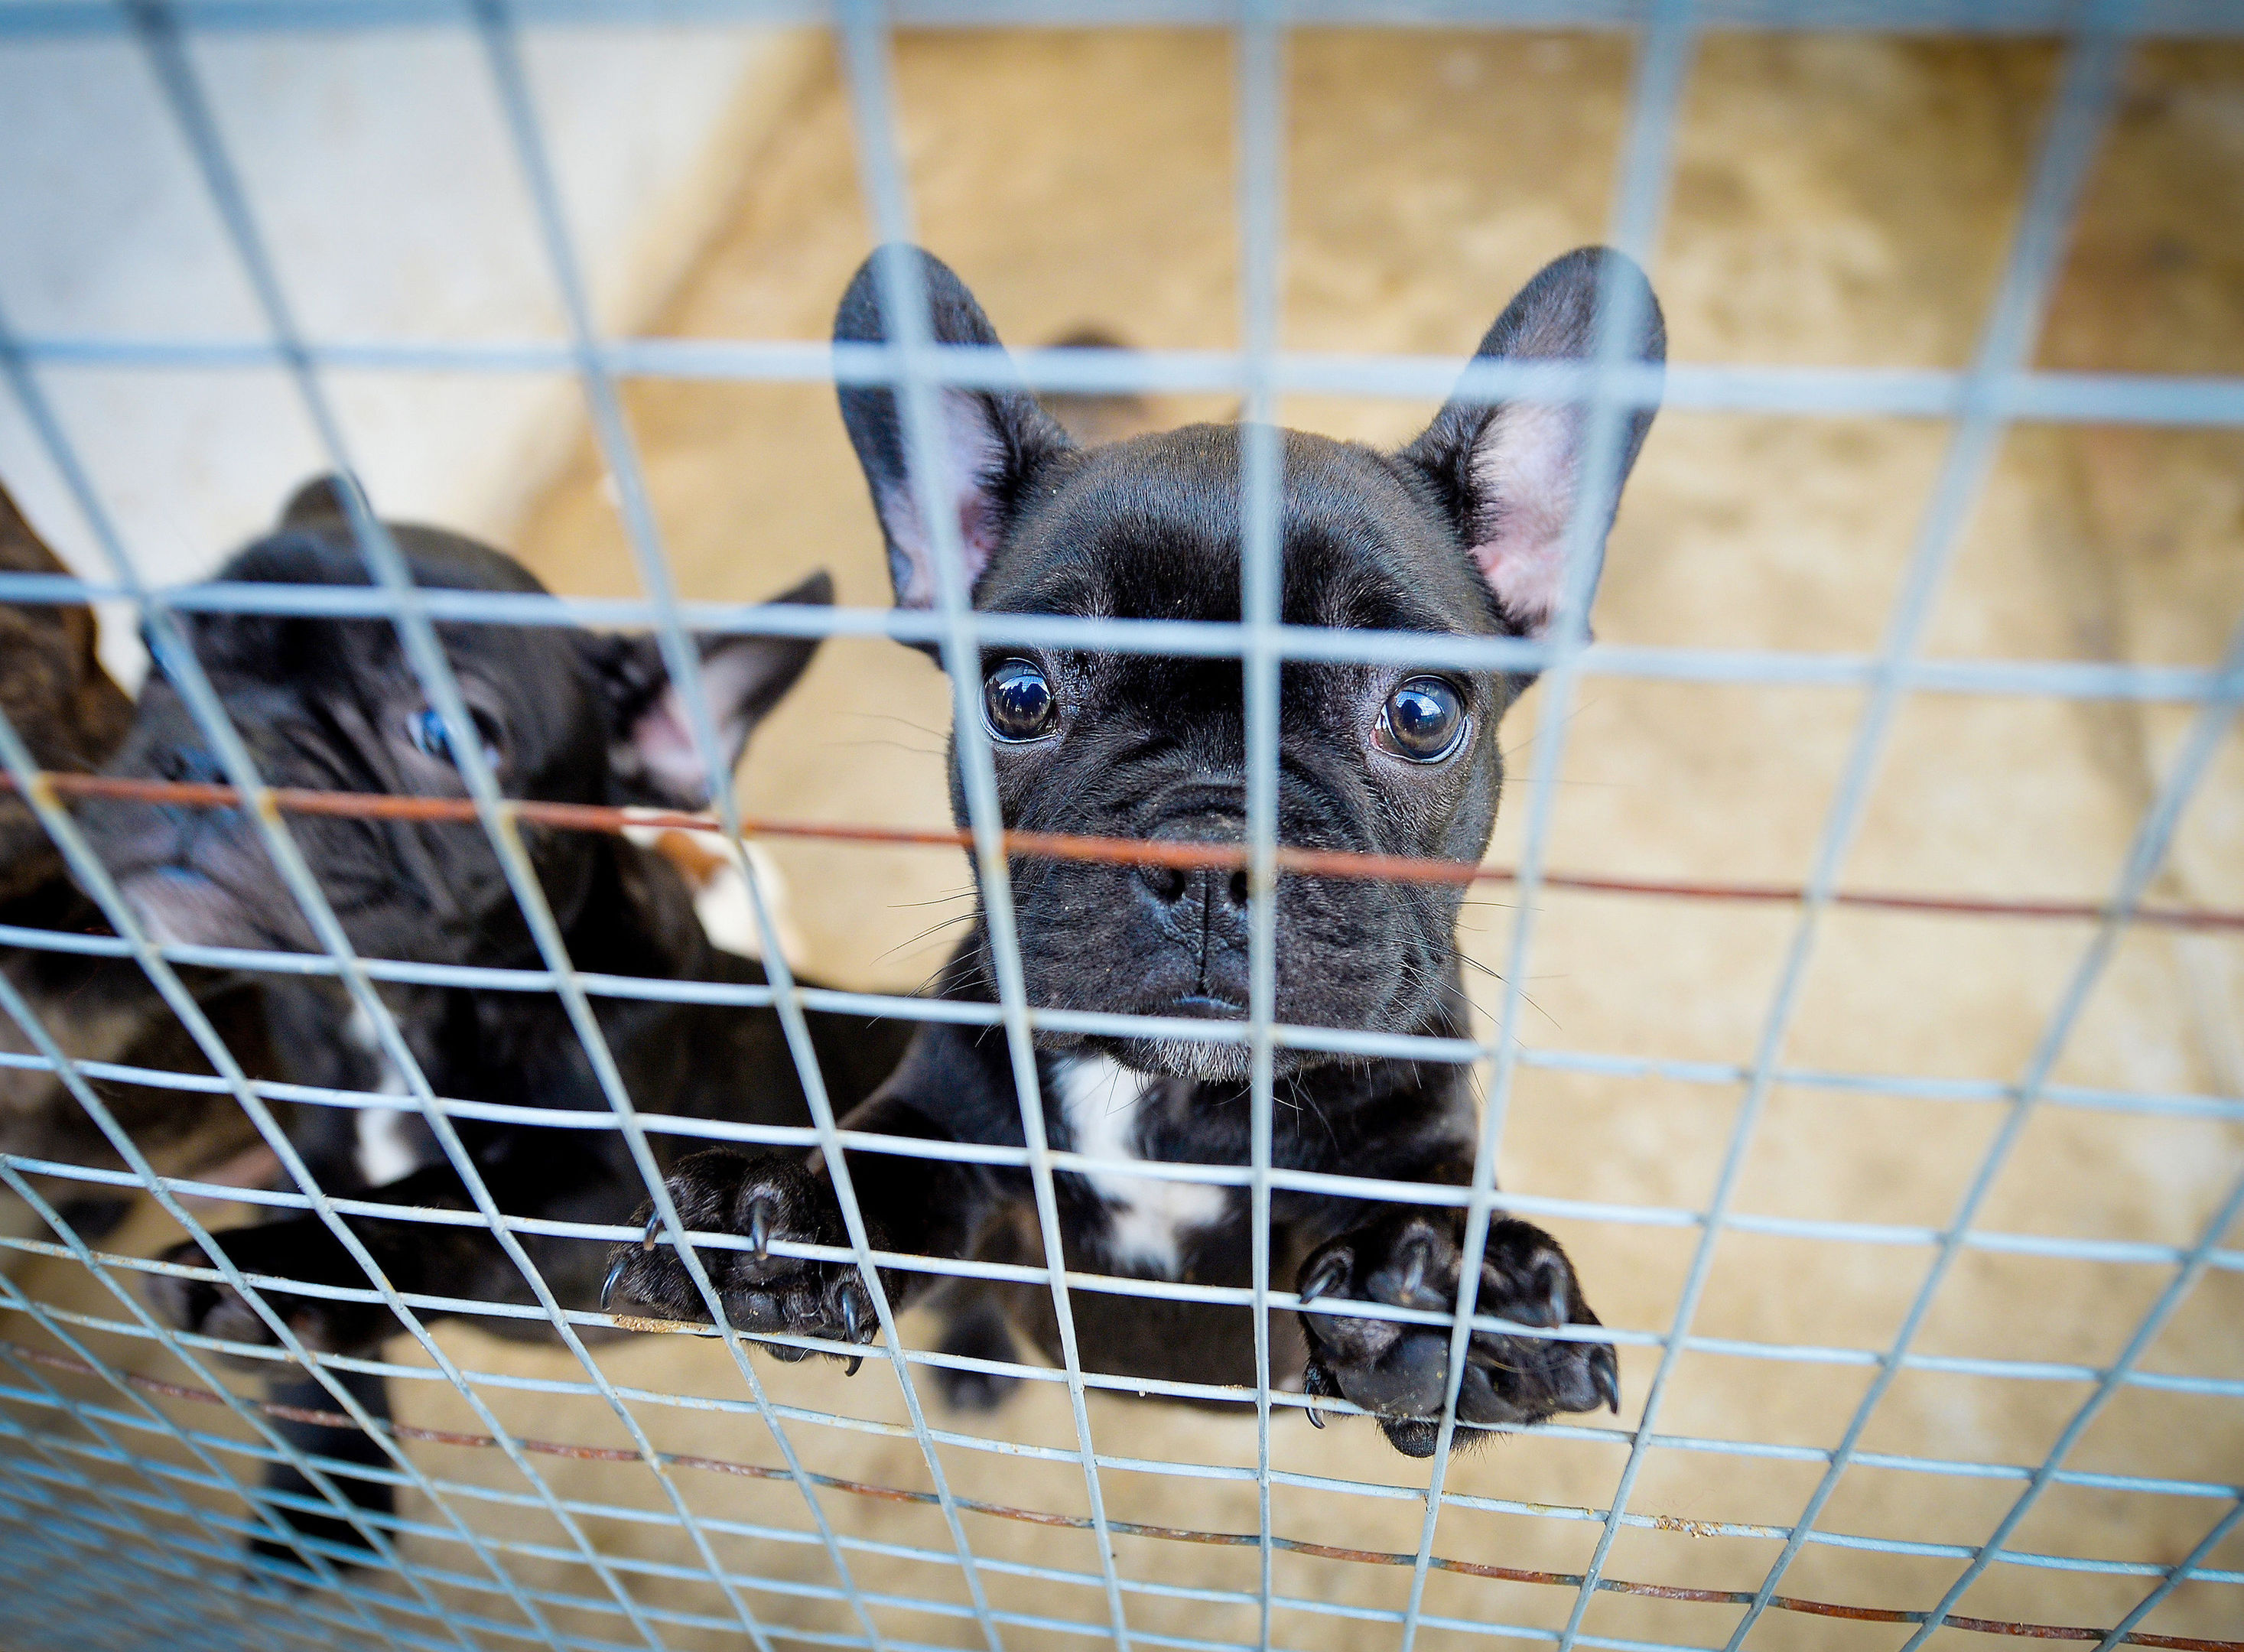 French Bulldogs which have been smuggled in to the UK as bootleg breeders are illegally smuggling thousands of puppies into Britain to meet Christmas demand, the dog welfare charity has warned. (Beth Walsh/Dogs Trust/PA Wire)